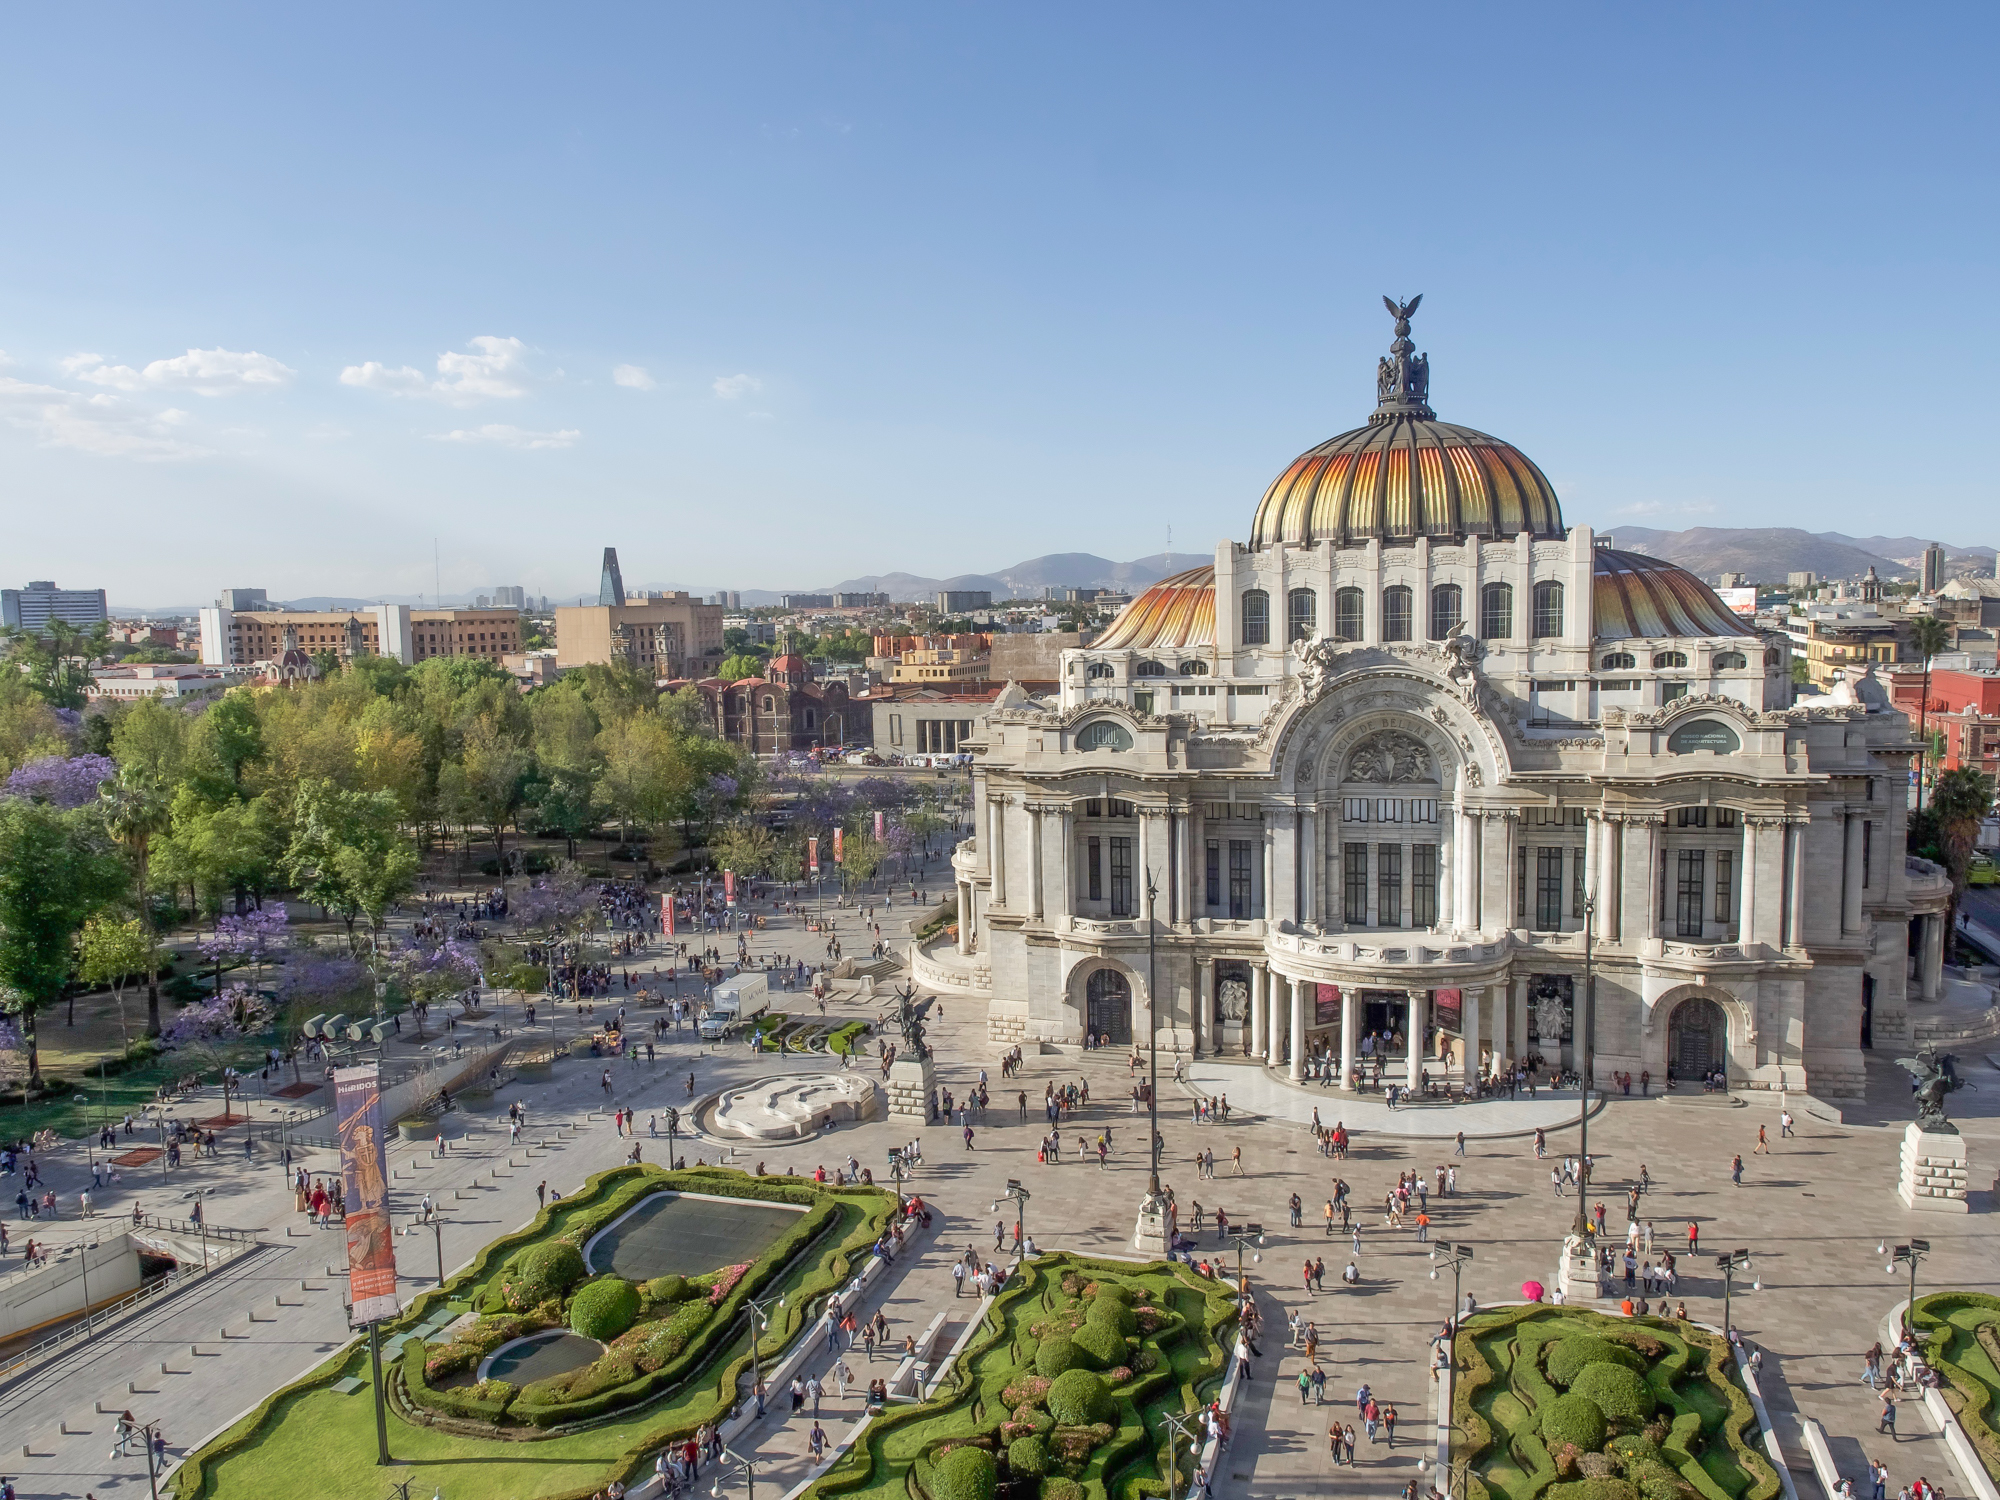 3 days in Mexico City, Do This, Not That | Dos and dont's for your first trip to Mexico City | CDMX | Mexico DF | altitude sickness | xochimilco | Casa Azul | Frida Kahlo, Diego Rivera | best views in Mexico City | Mexican food | Aeromexico | Tequila + Mezcal | Palacio des bellas artes | Zocalo | Dia de Muertos, Day of the Dead | Mexico travel tips